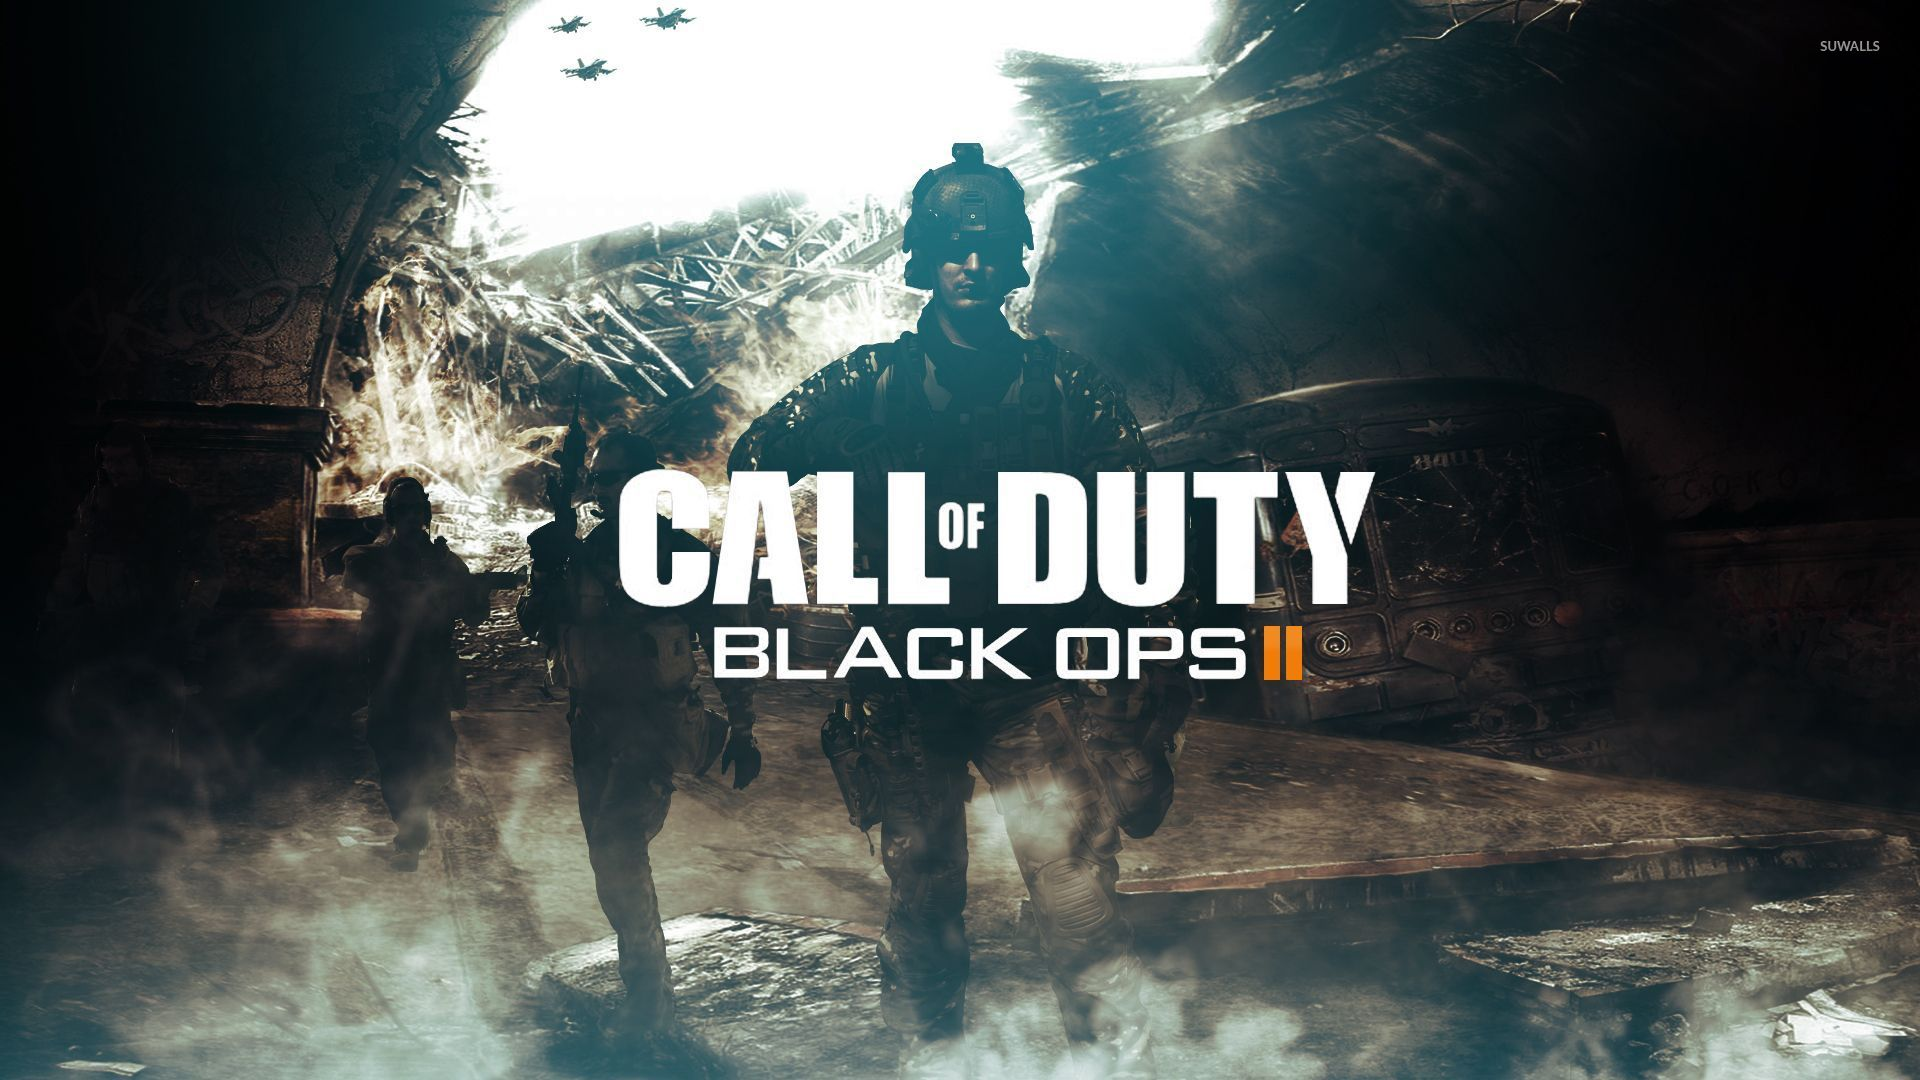 Call Of Duty Black Ops Ii 9 Wallpaper Game Wallpapers